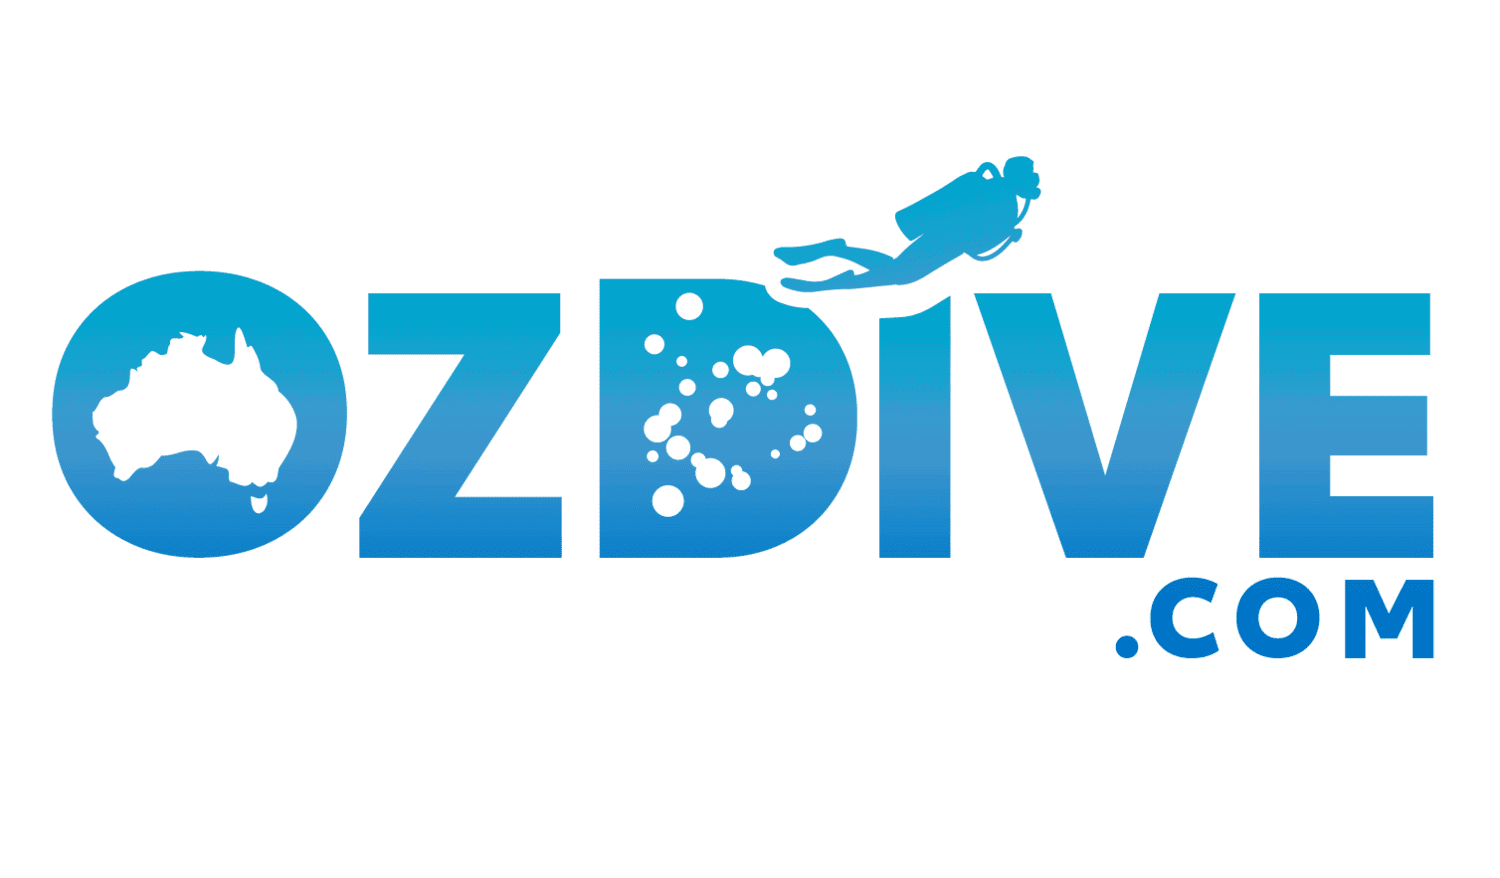 OZDIVE